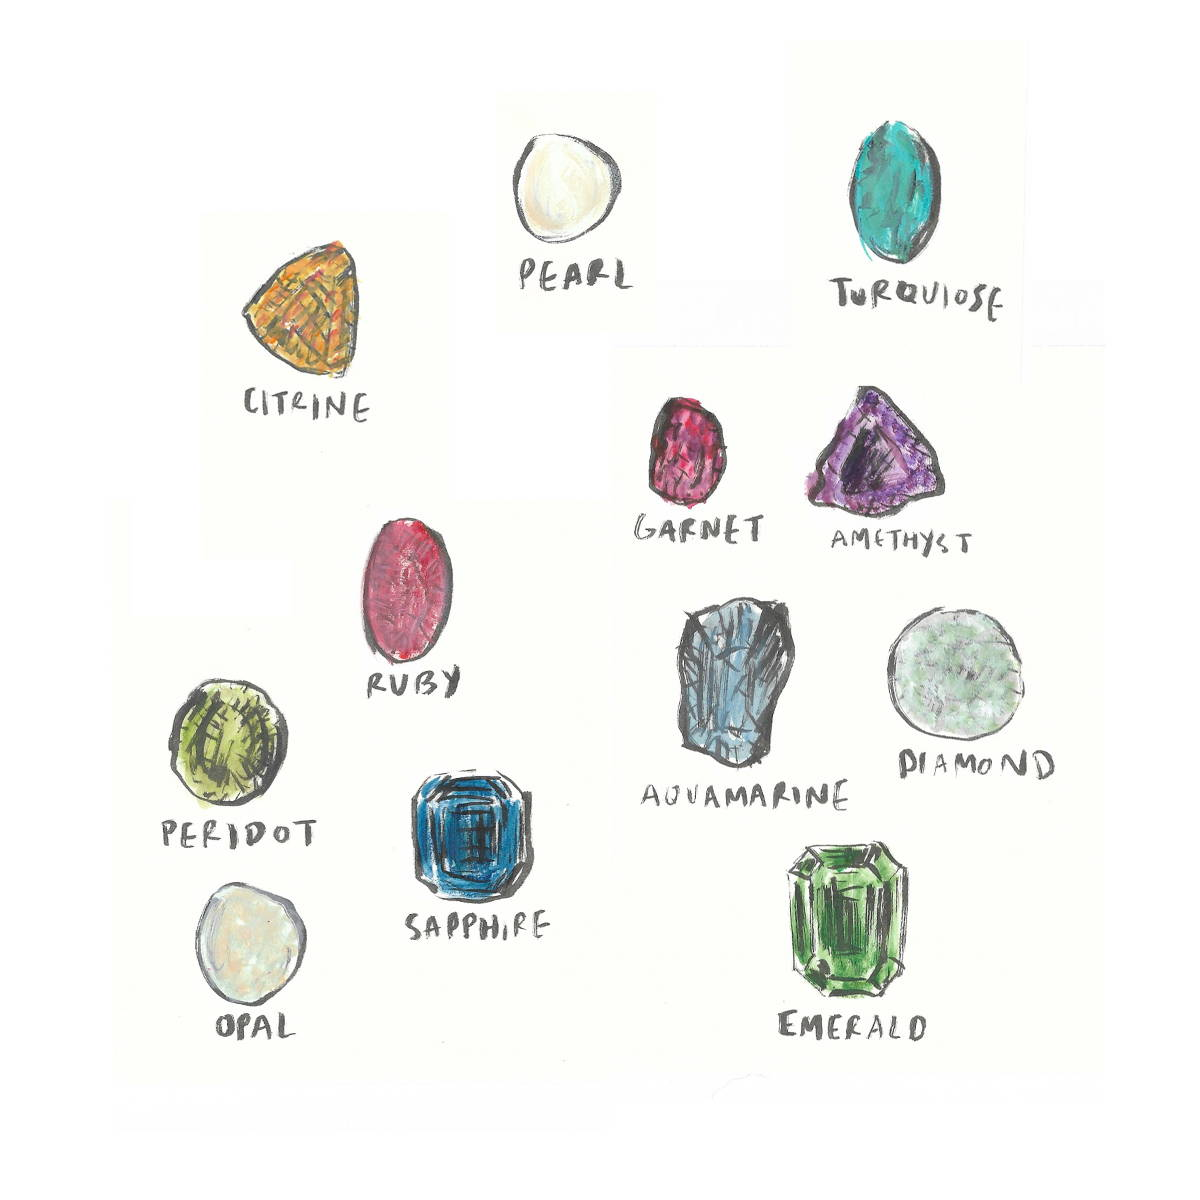 Birthstone drawings